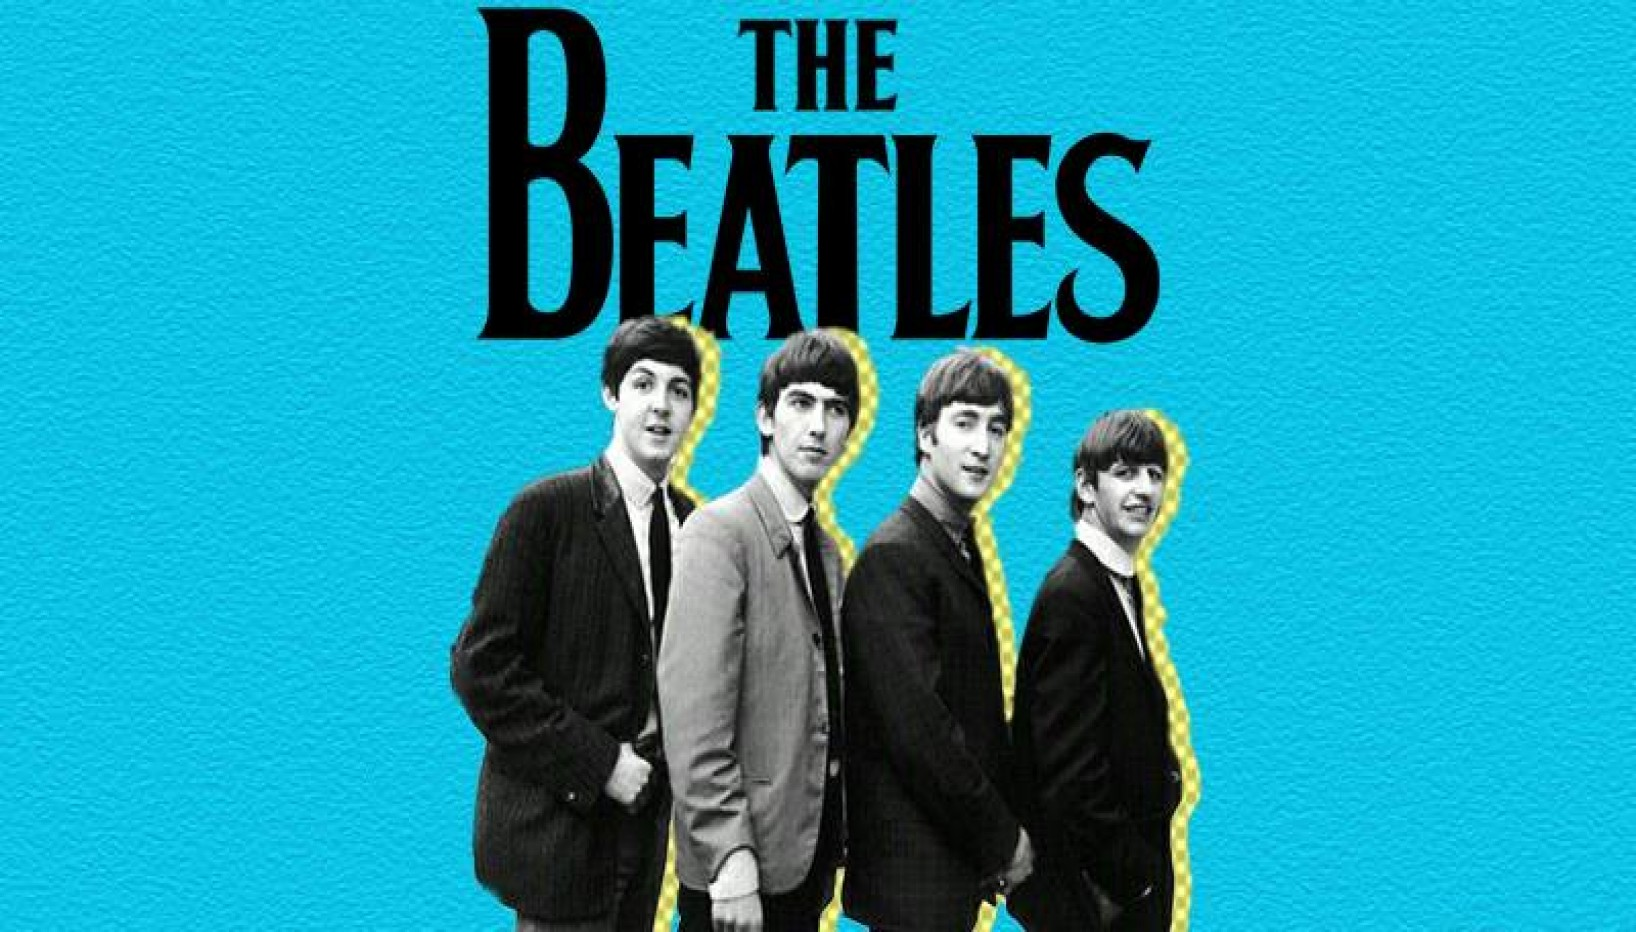 Are you a True Beatlemaniac? Take This Quiz To Find Out